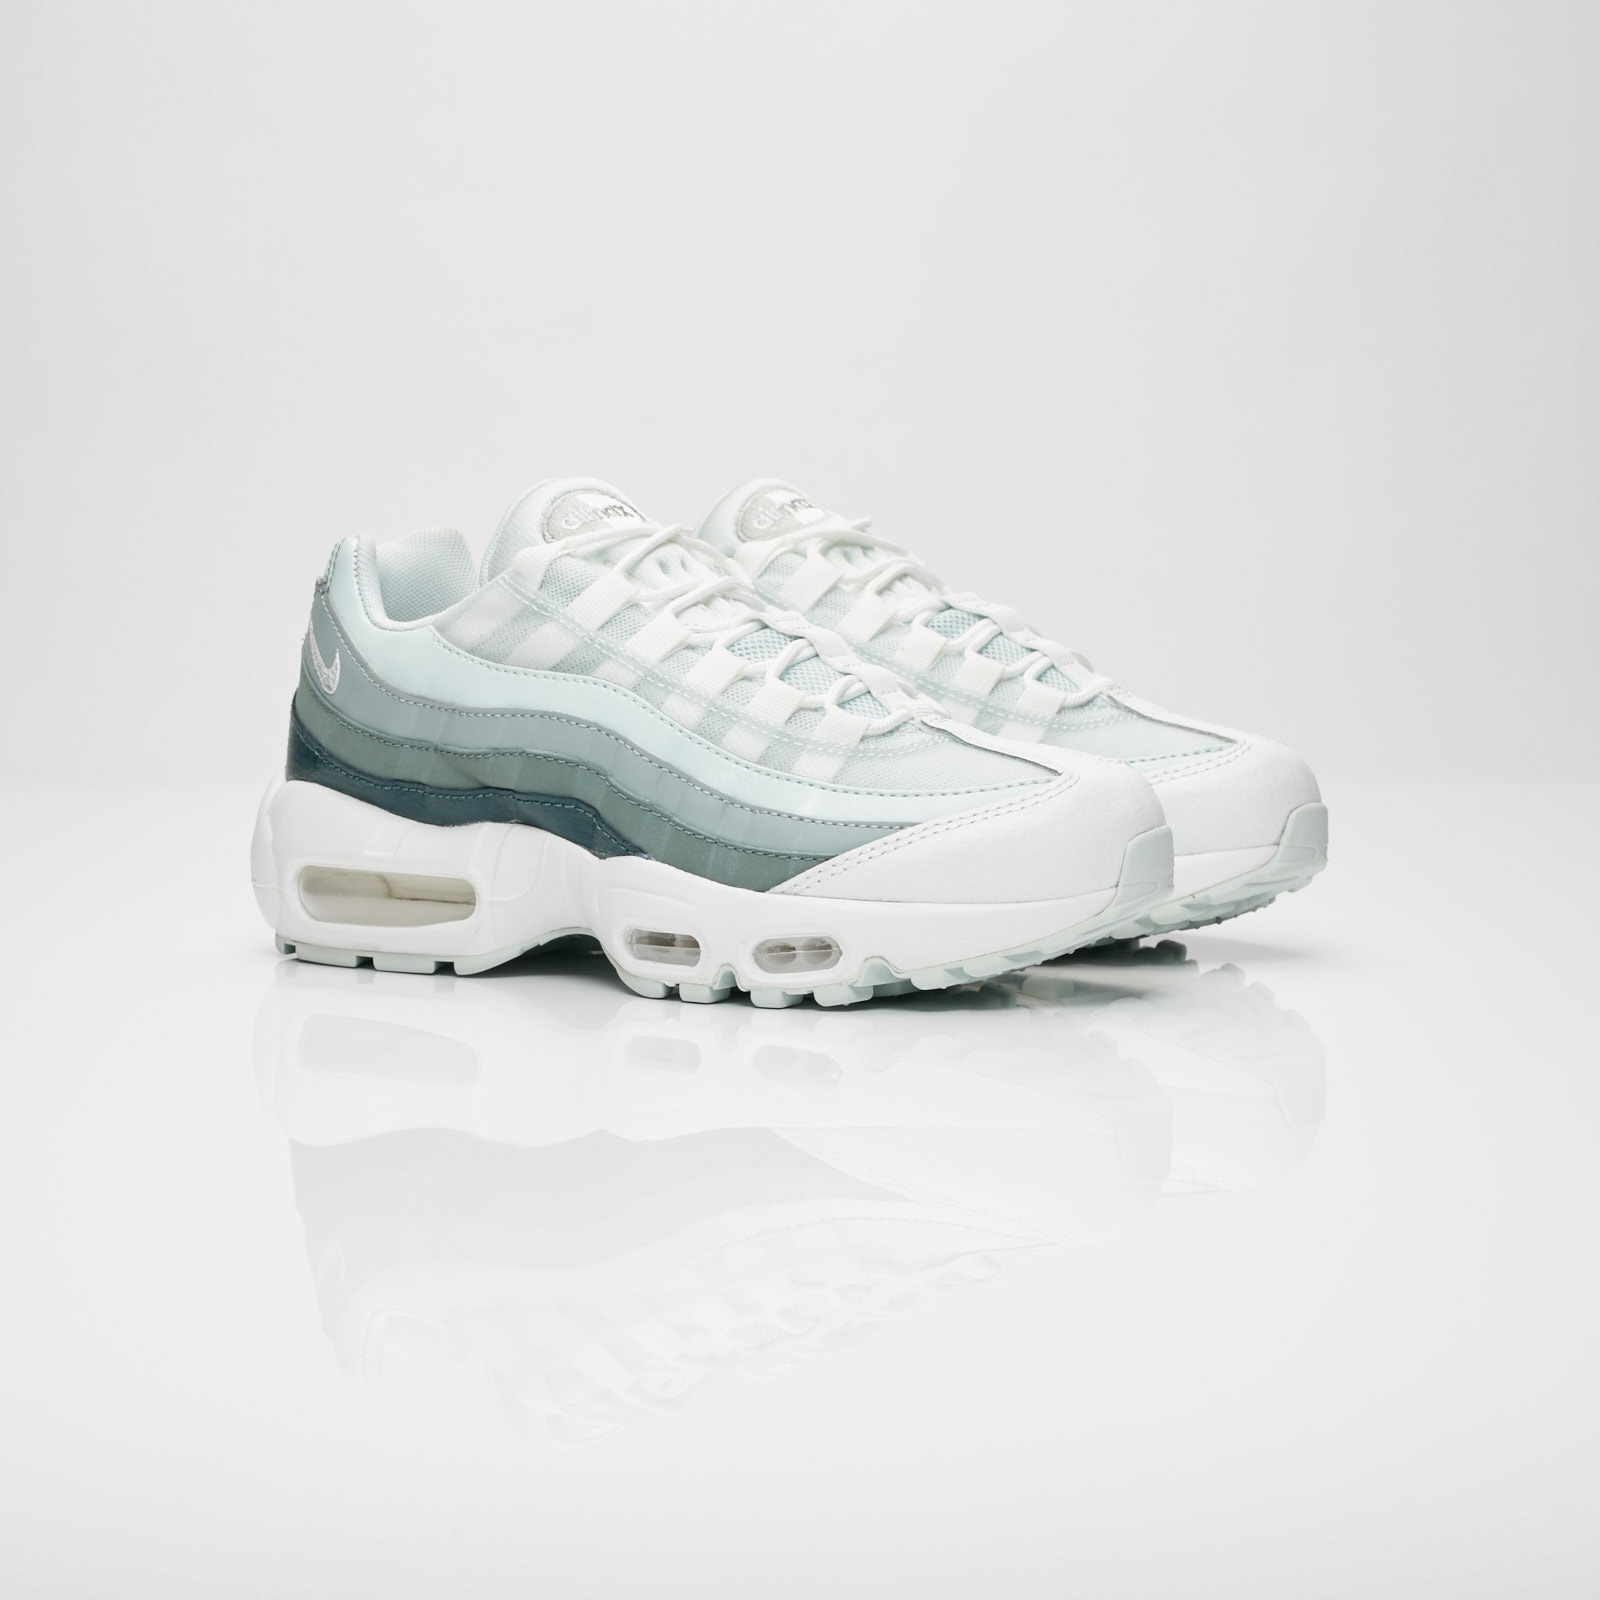 premium selection 4fef8 cd8f3 Nike Sportswear Wmns Air Max 95